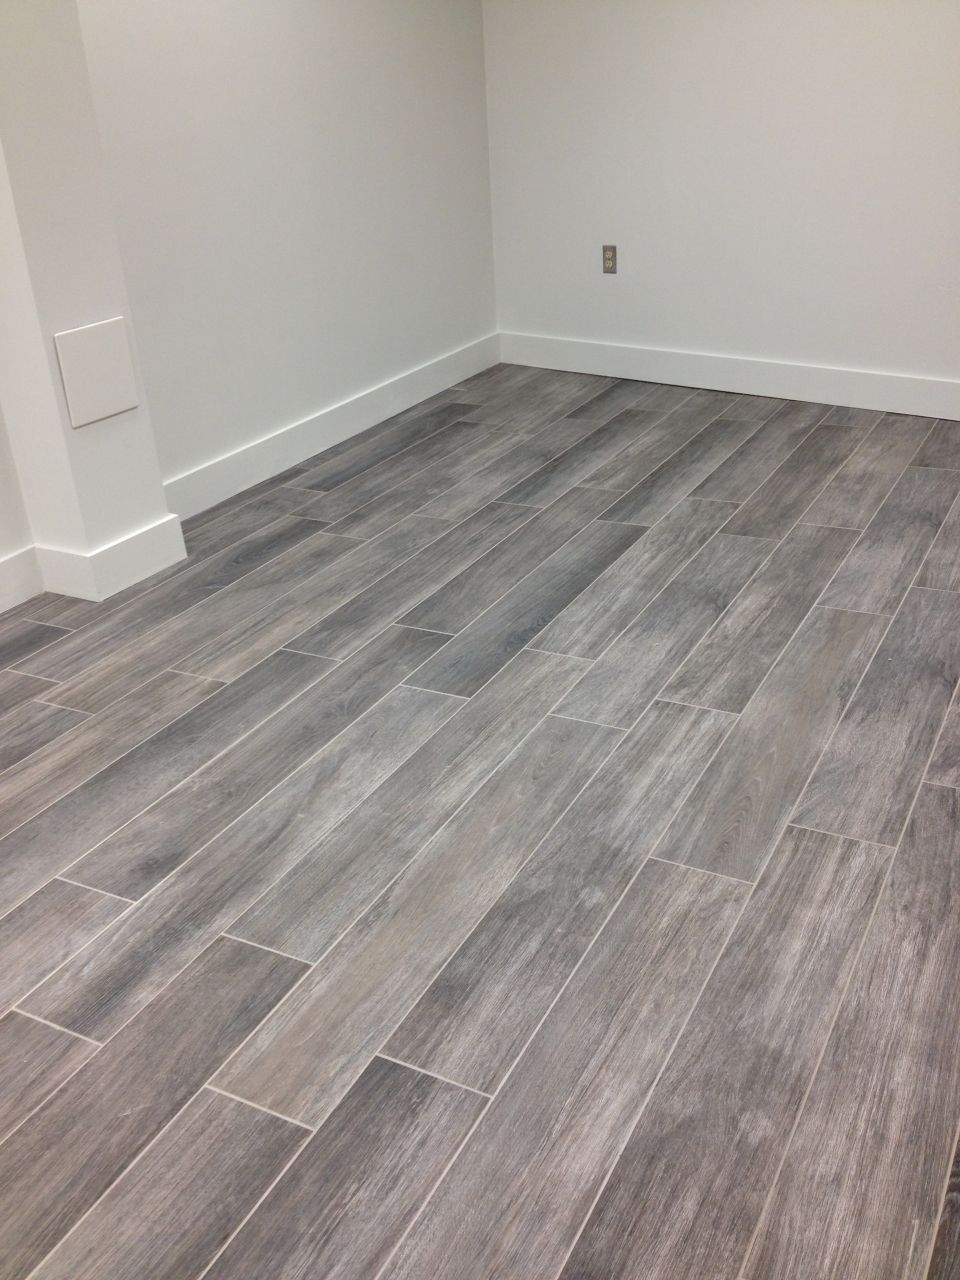 Gray wood tile floor no3lcd6n8 homes pinterest wood for Grey brown floor tiles